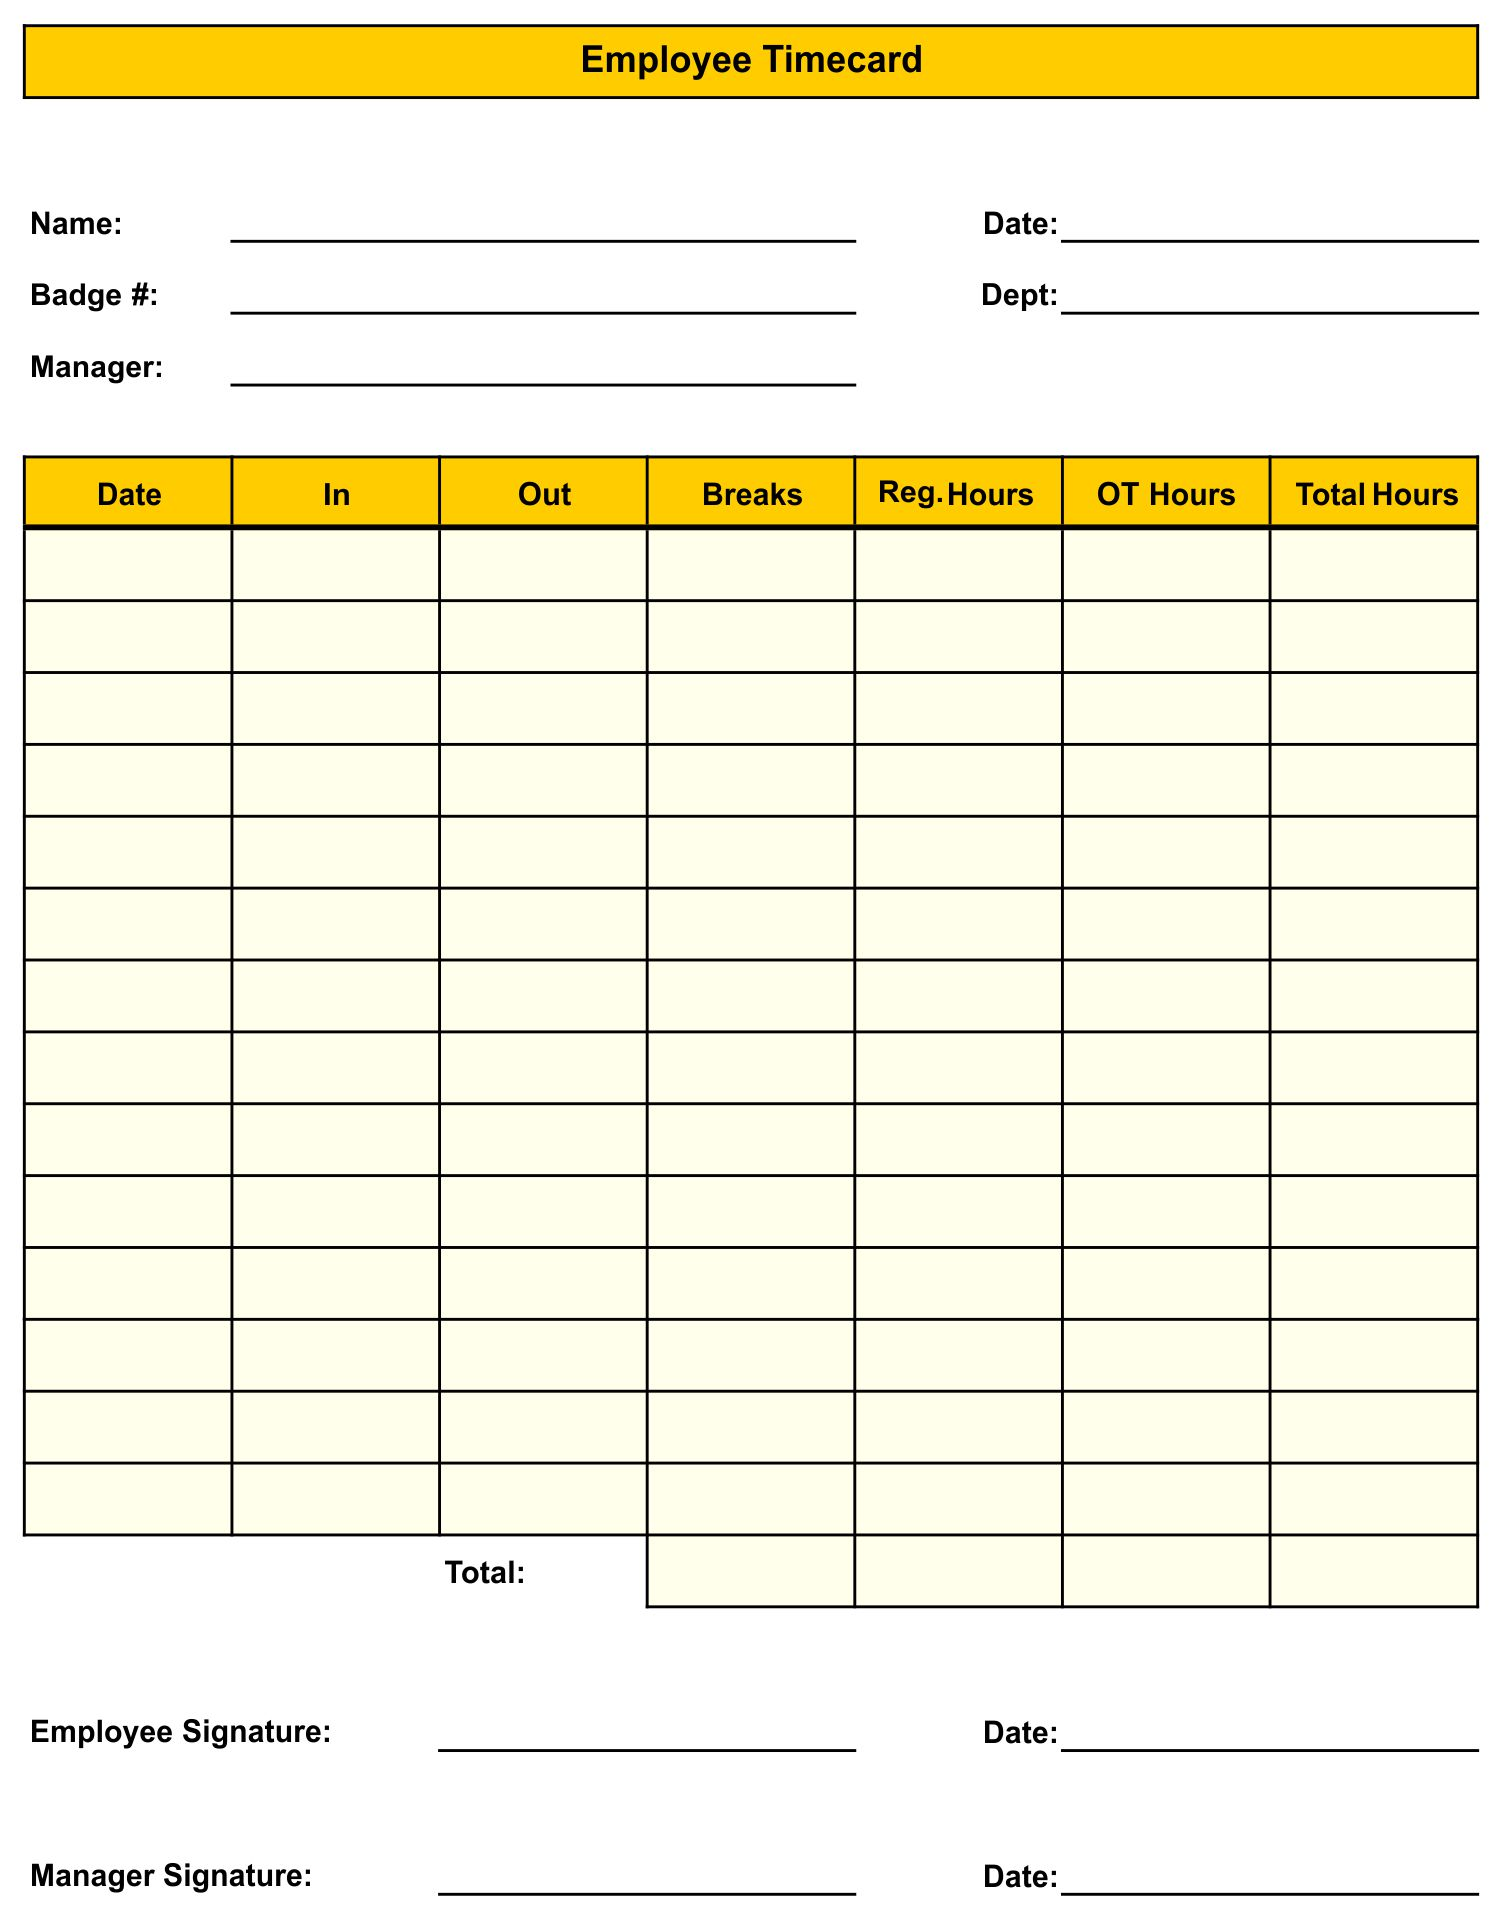 photograph relating to Printable Time Cards identify √ 8 Perfect Pictures of Blank Printable Timesheets